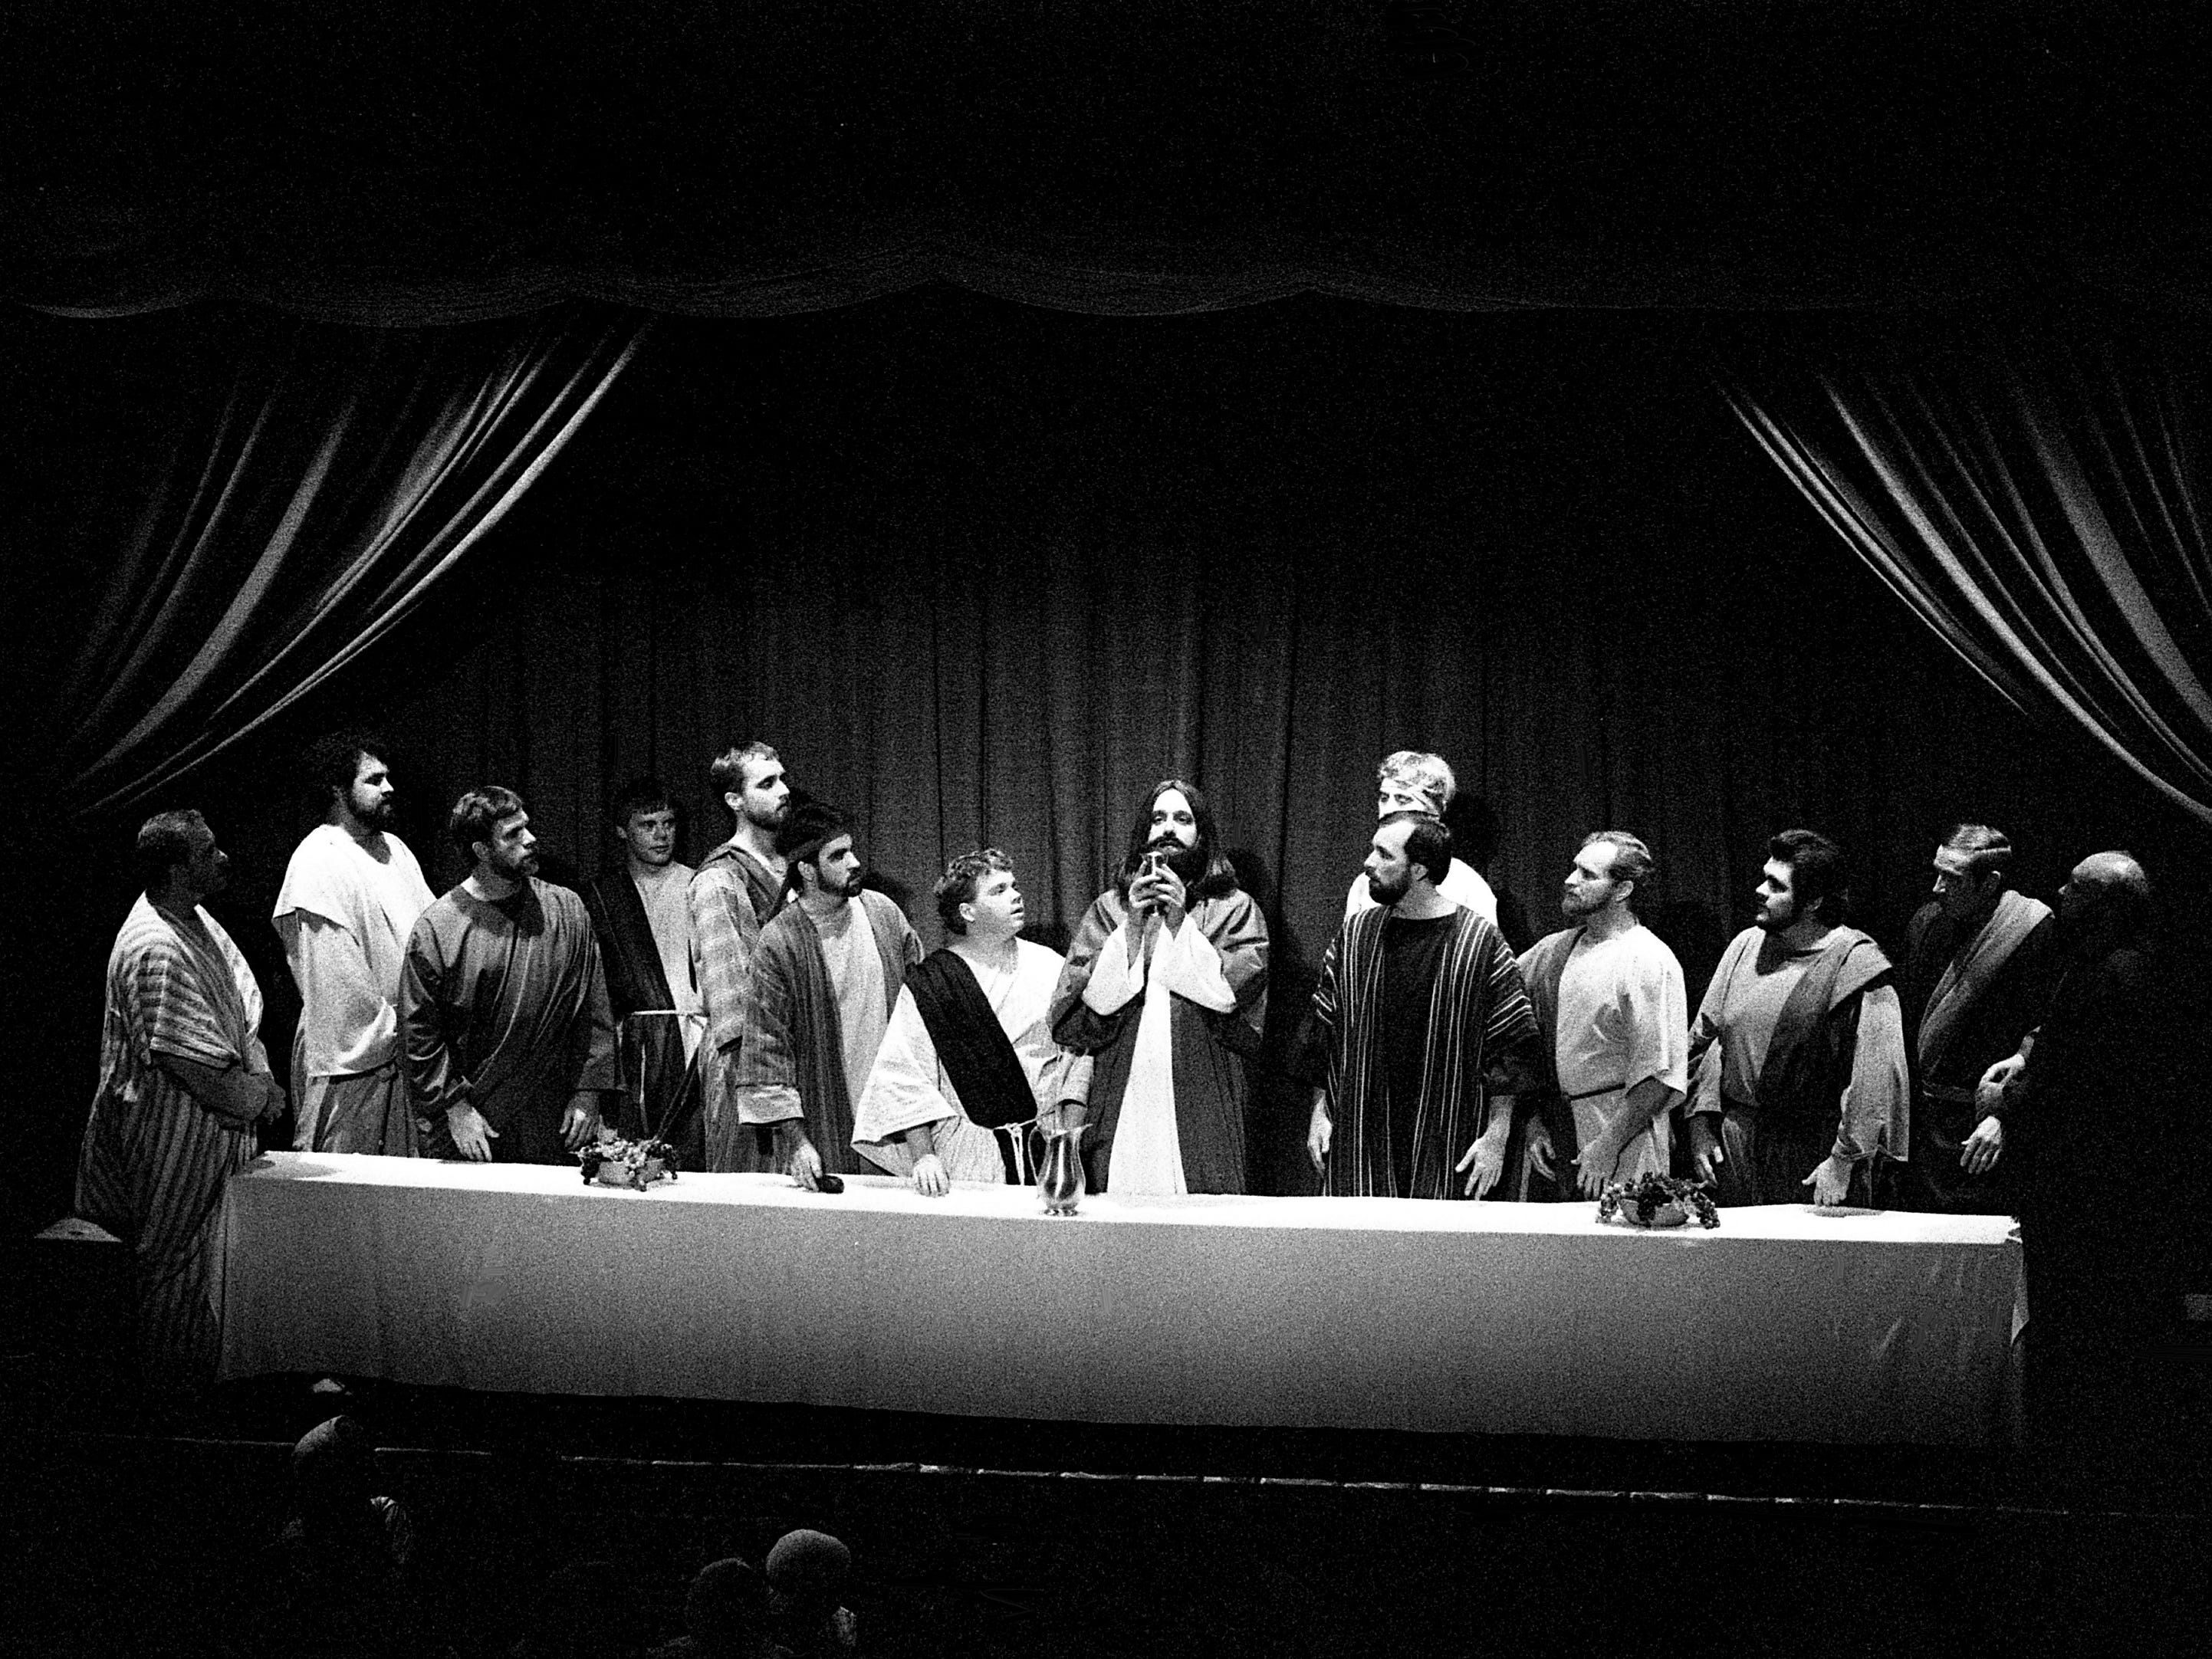 Jesus, portrayed by Bill Hart, center, shares his Last Supper with his apostles during the annual Passion play presented by the Grace Church of the Nazarene on Pennington Bend Road on  March 24, 1989. It is one of the more noted observances of Easter in the Nashville area.